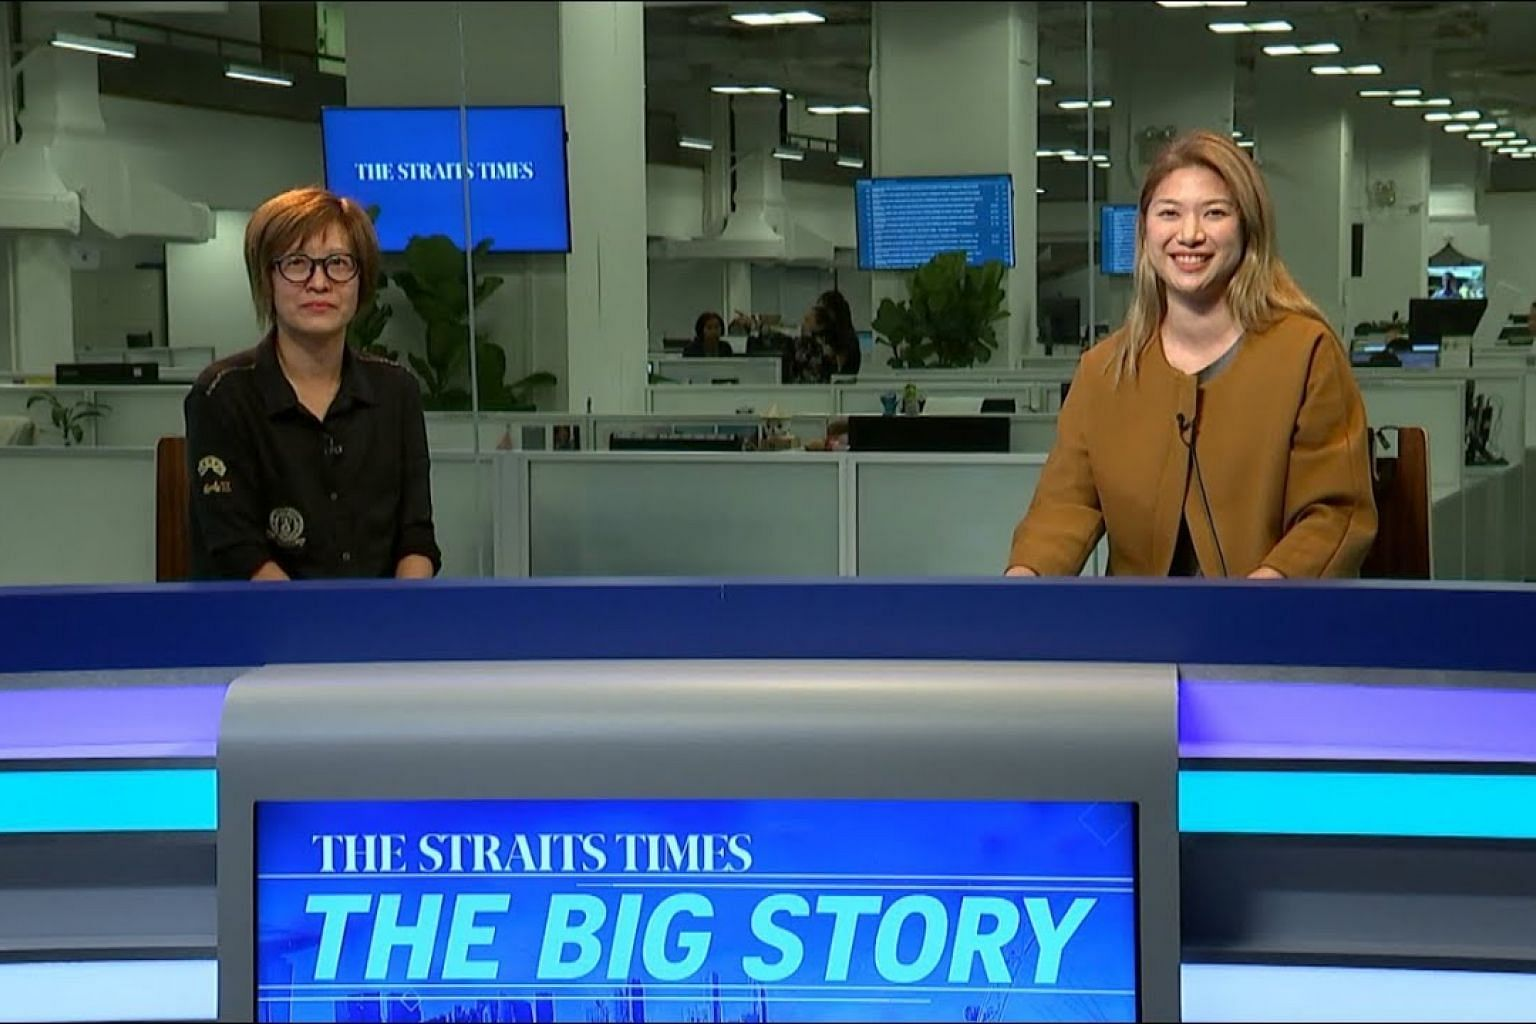 The Big Story: Act now to prevent heart attacks | Restaurant-worthy hospital food (08/07/19)